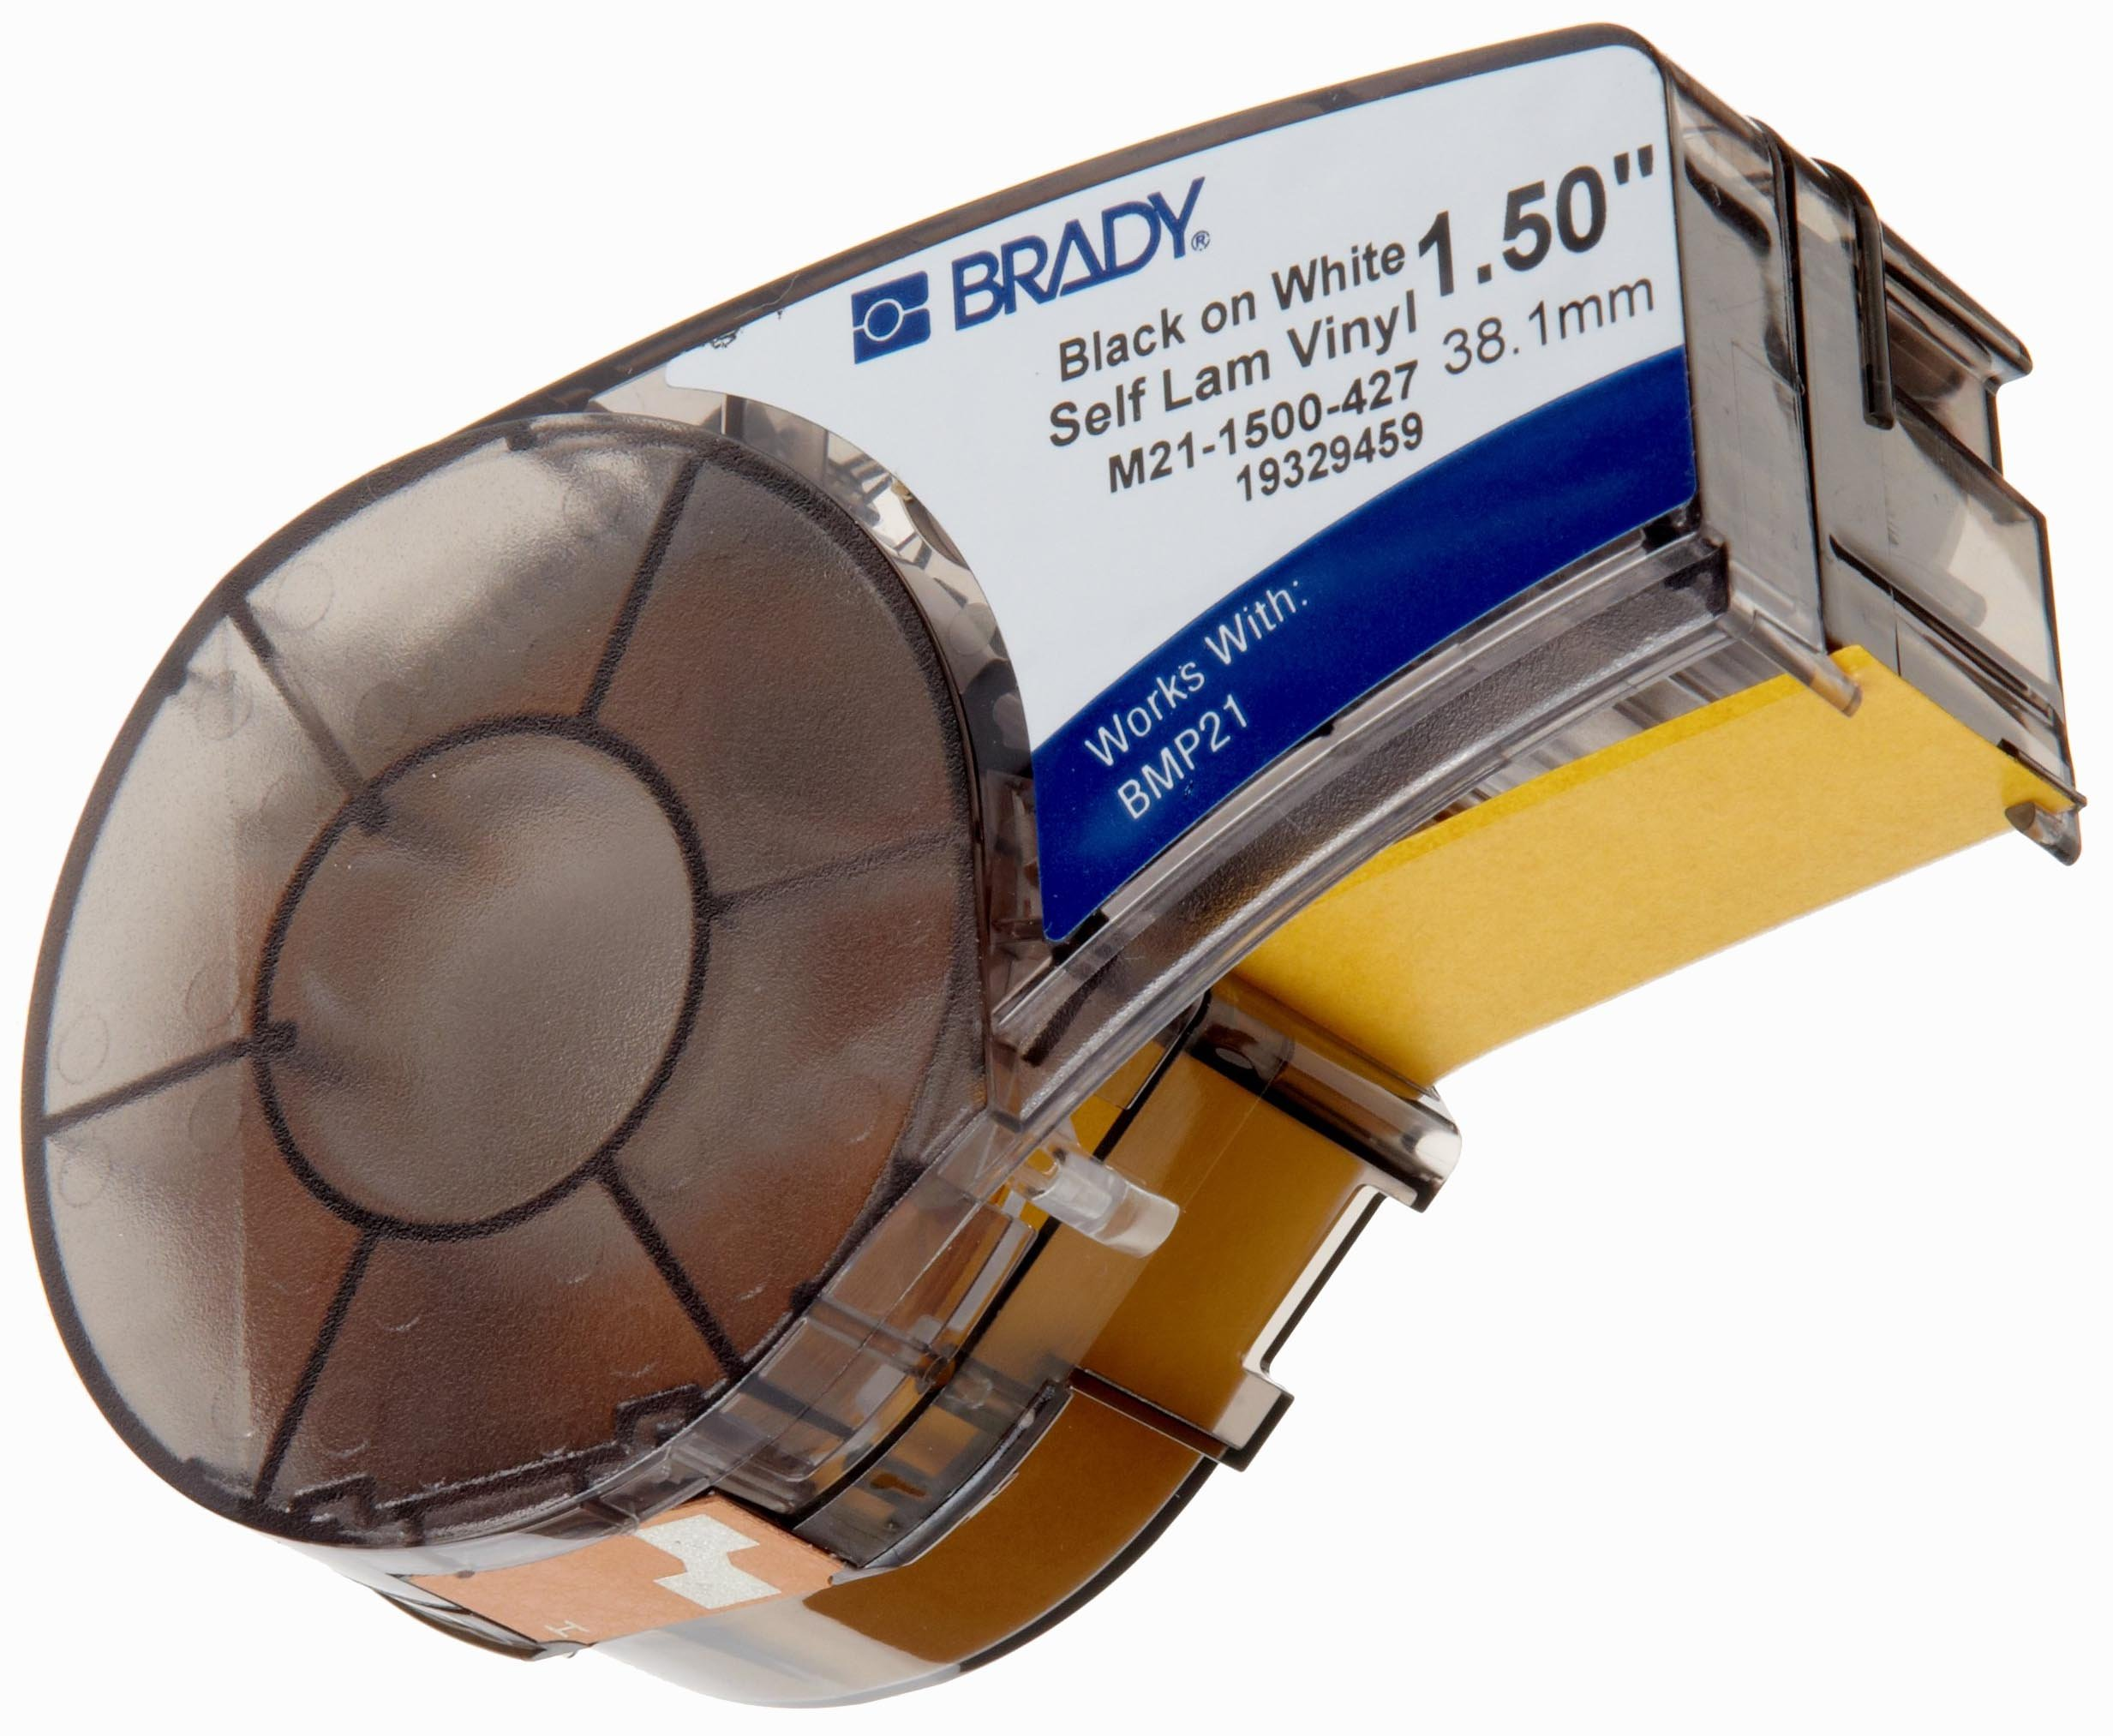 Brady Self-Laminating Vinyl Label Tape (M21-1500-427) - Black on White, Translucent Tape - Compatible with BMP21-PLUS Printer - 14' Length, 1.5'' Width